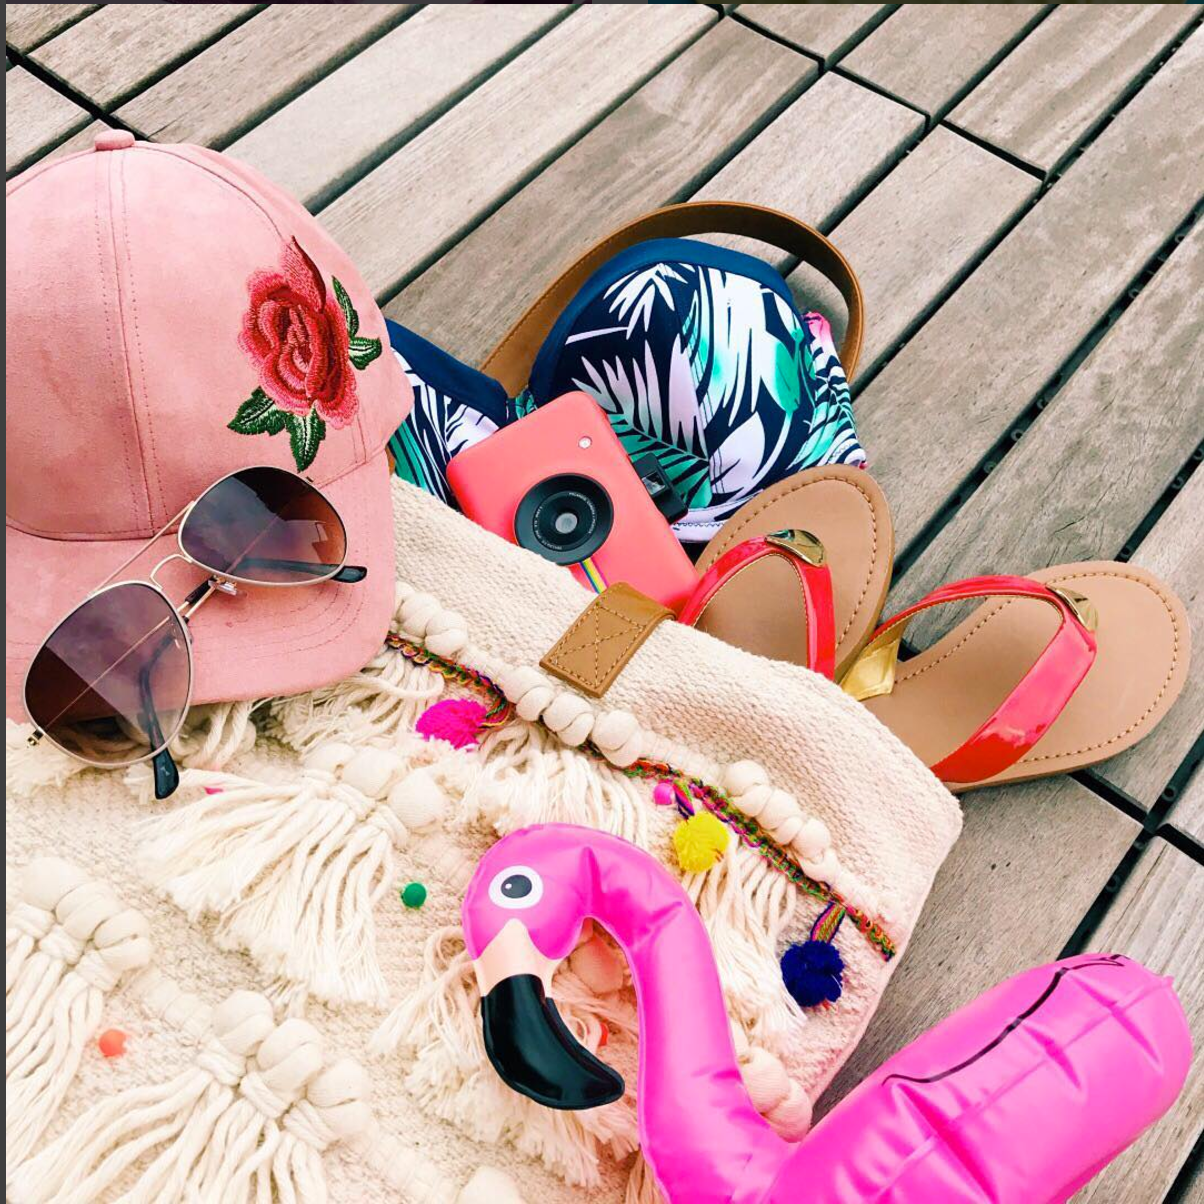 Because there's still a whole lotta summer left. Gear up for beach days ahead in our bio.